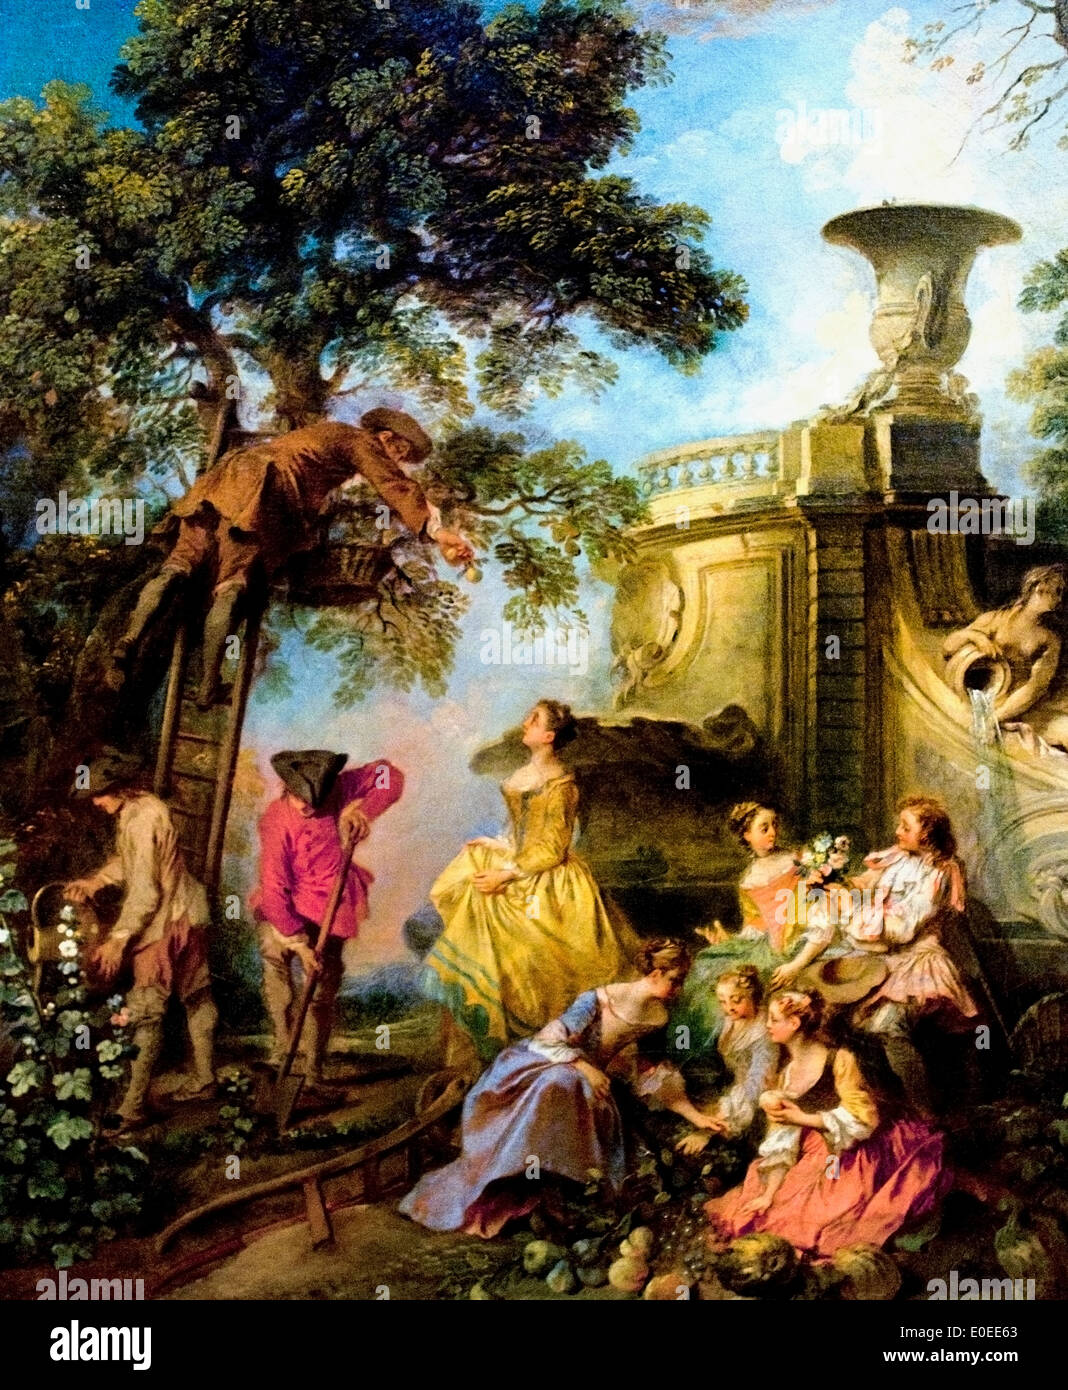 The Earth by Nicolas Lancret 1690-1743 France French - Stock Image